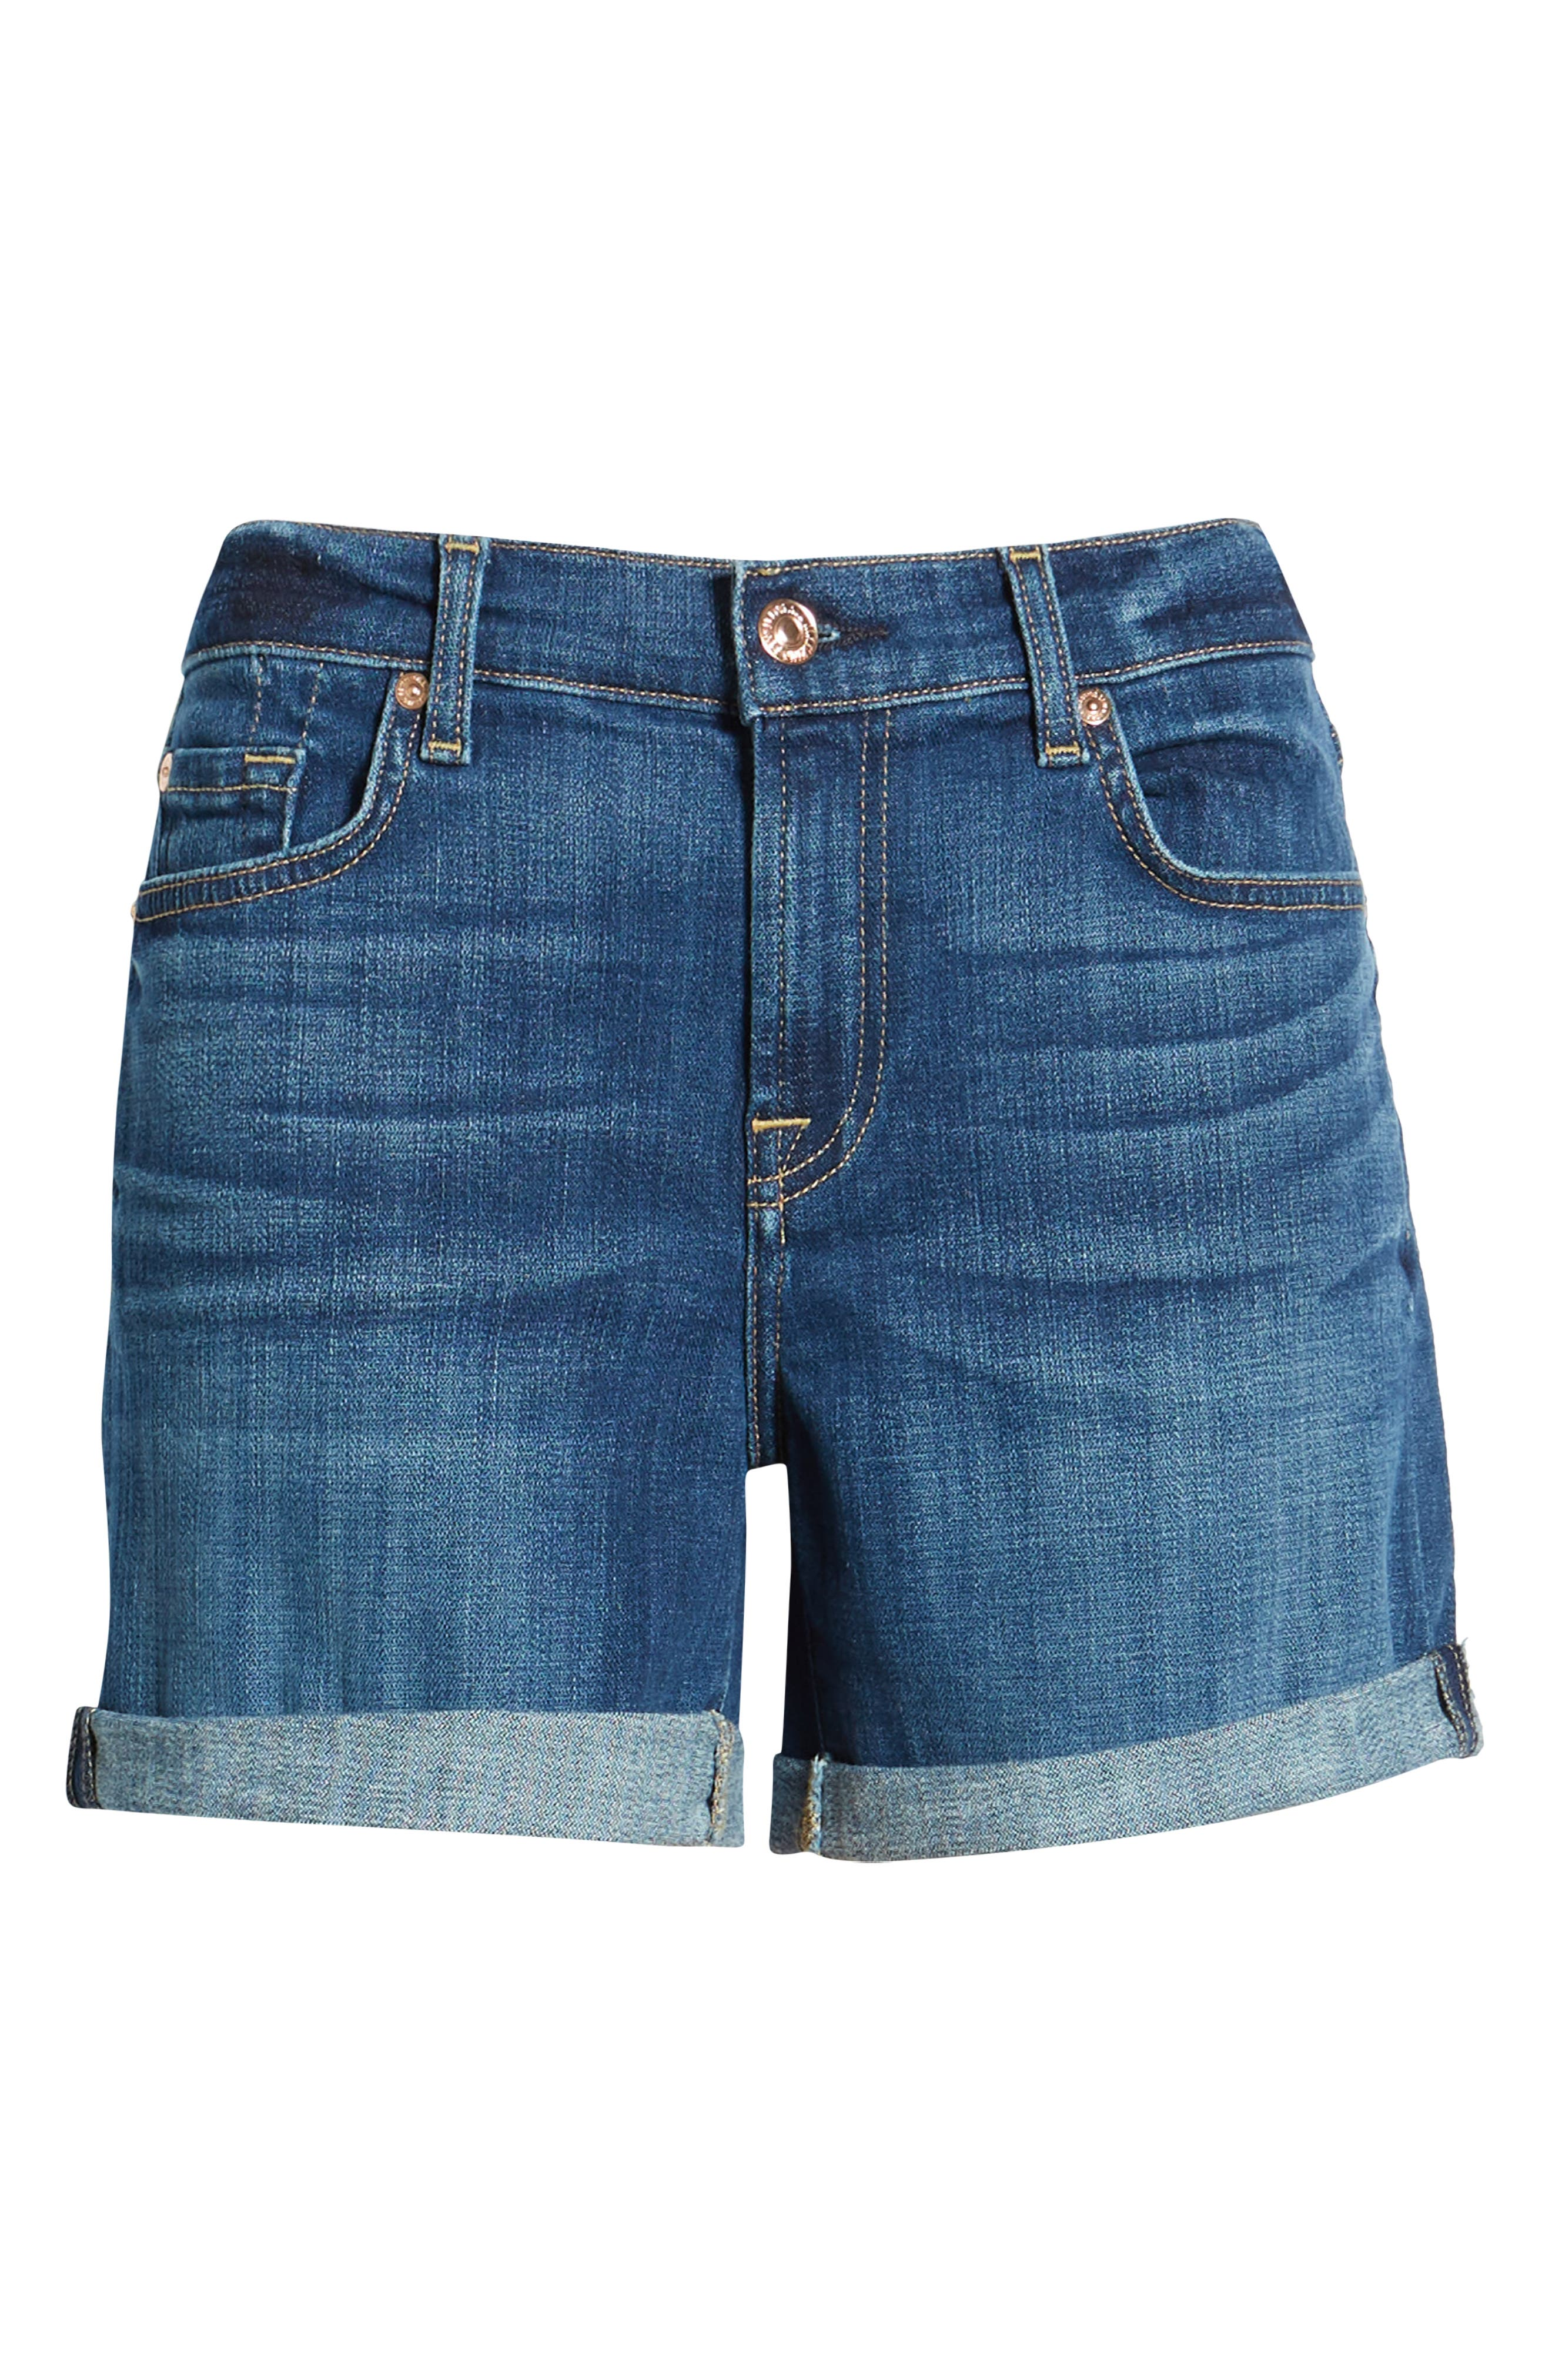 7 FOR ALL MANKIND<SUP>®</SUP>, Roll Cuff Denim Shorts, Alternate thumbnail 7, color, BROKEN TWILL VANITY CLEAN